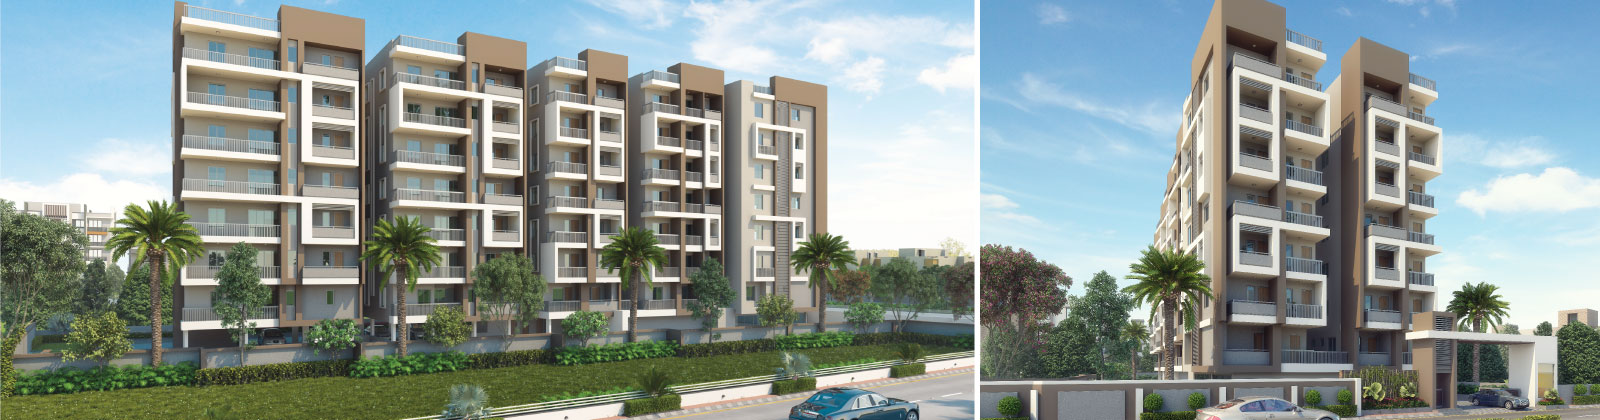 Vaishnavi Infra Developers - Actual Image